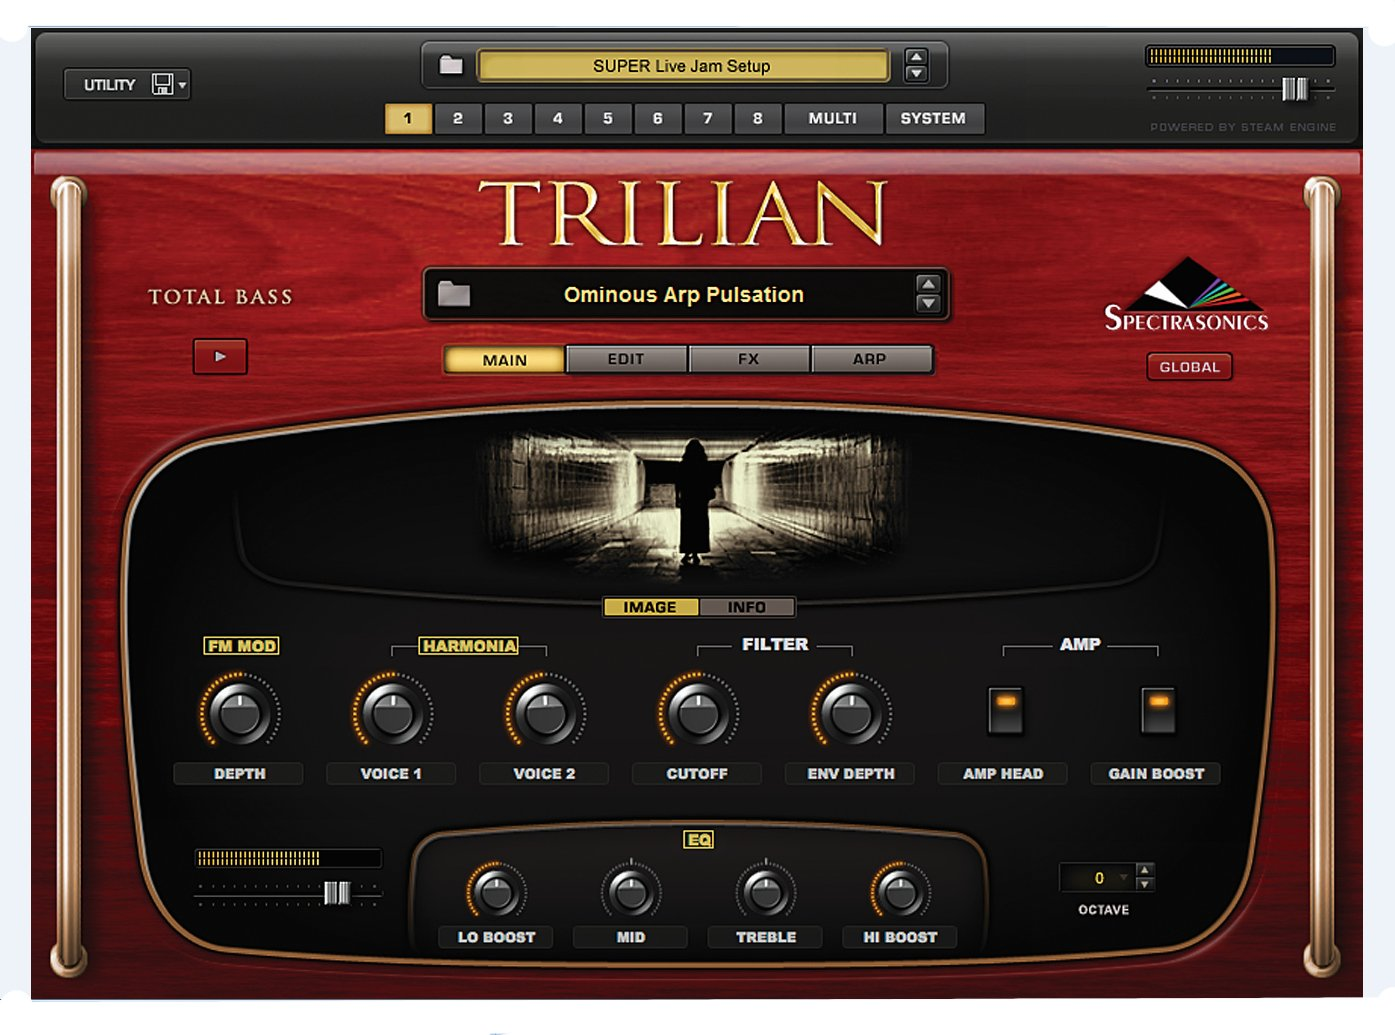 Software - Total Bass Module Virtual Instrument,  Mac/Win, requires AU, VST 2.4, or RTAS capable host software